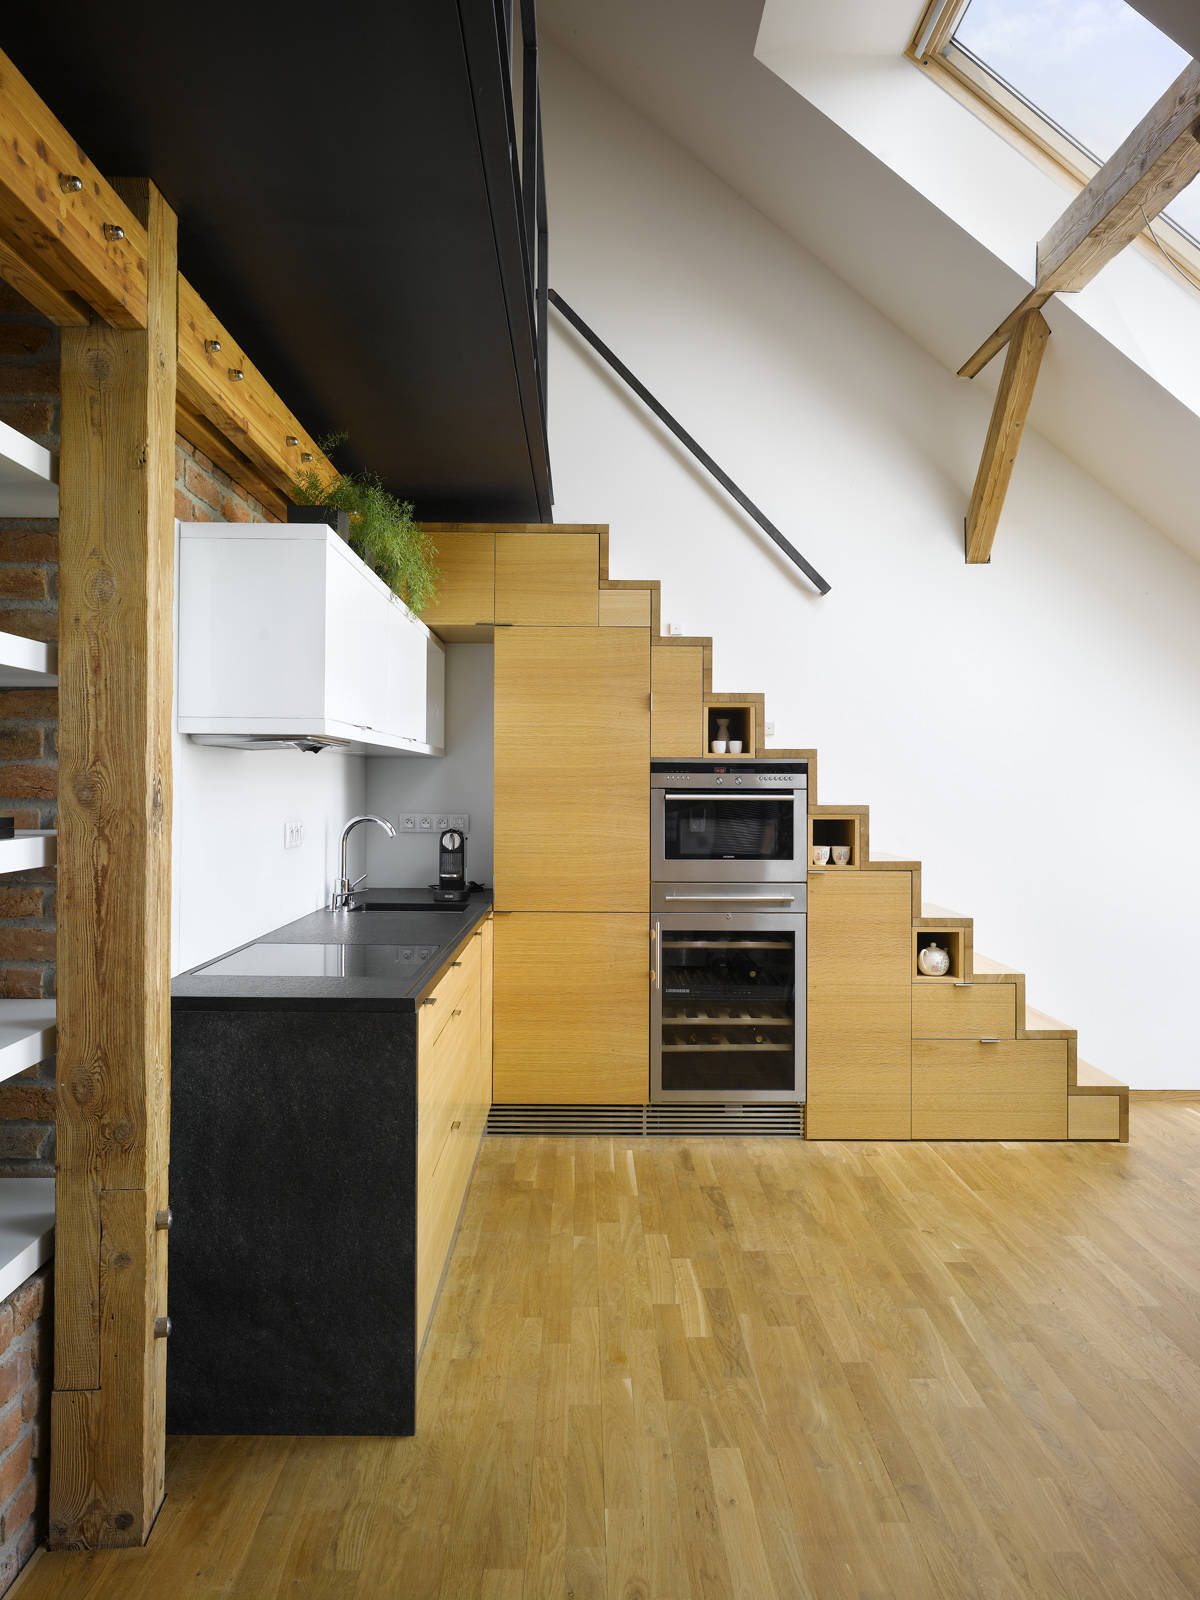 Small attic loft apartment in prague idesignarch for Attic kitchen designs